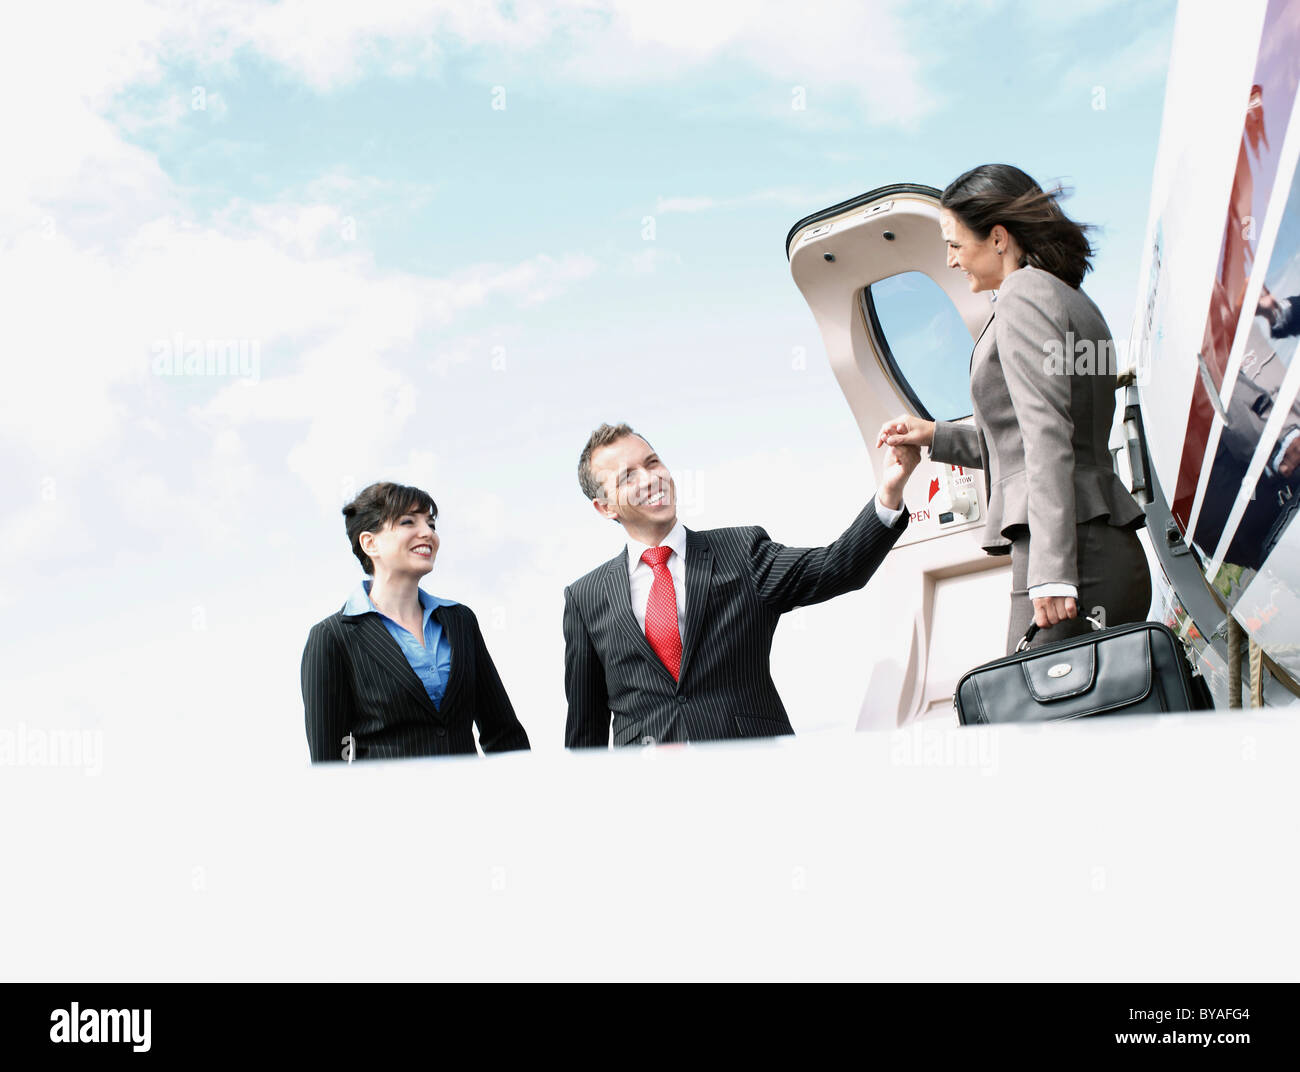 Business Executives - Stock Image